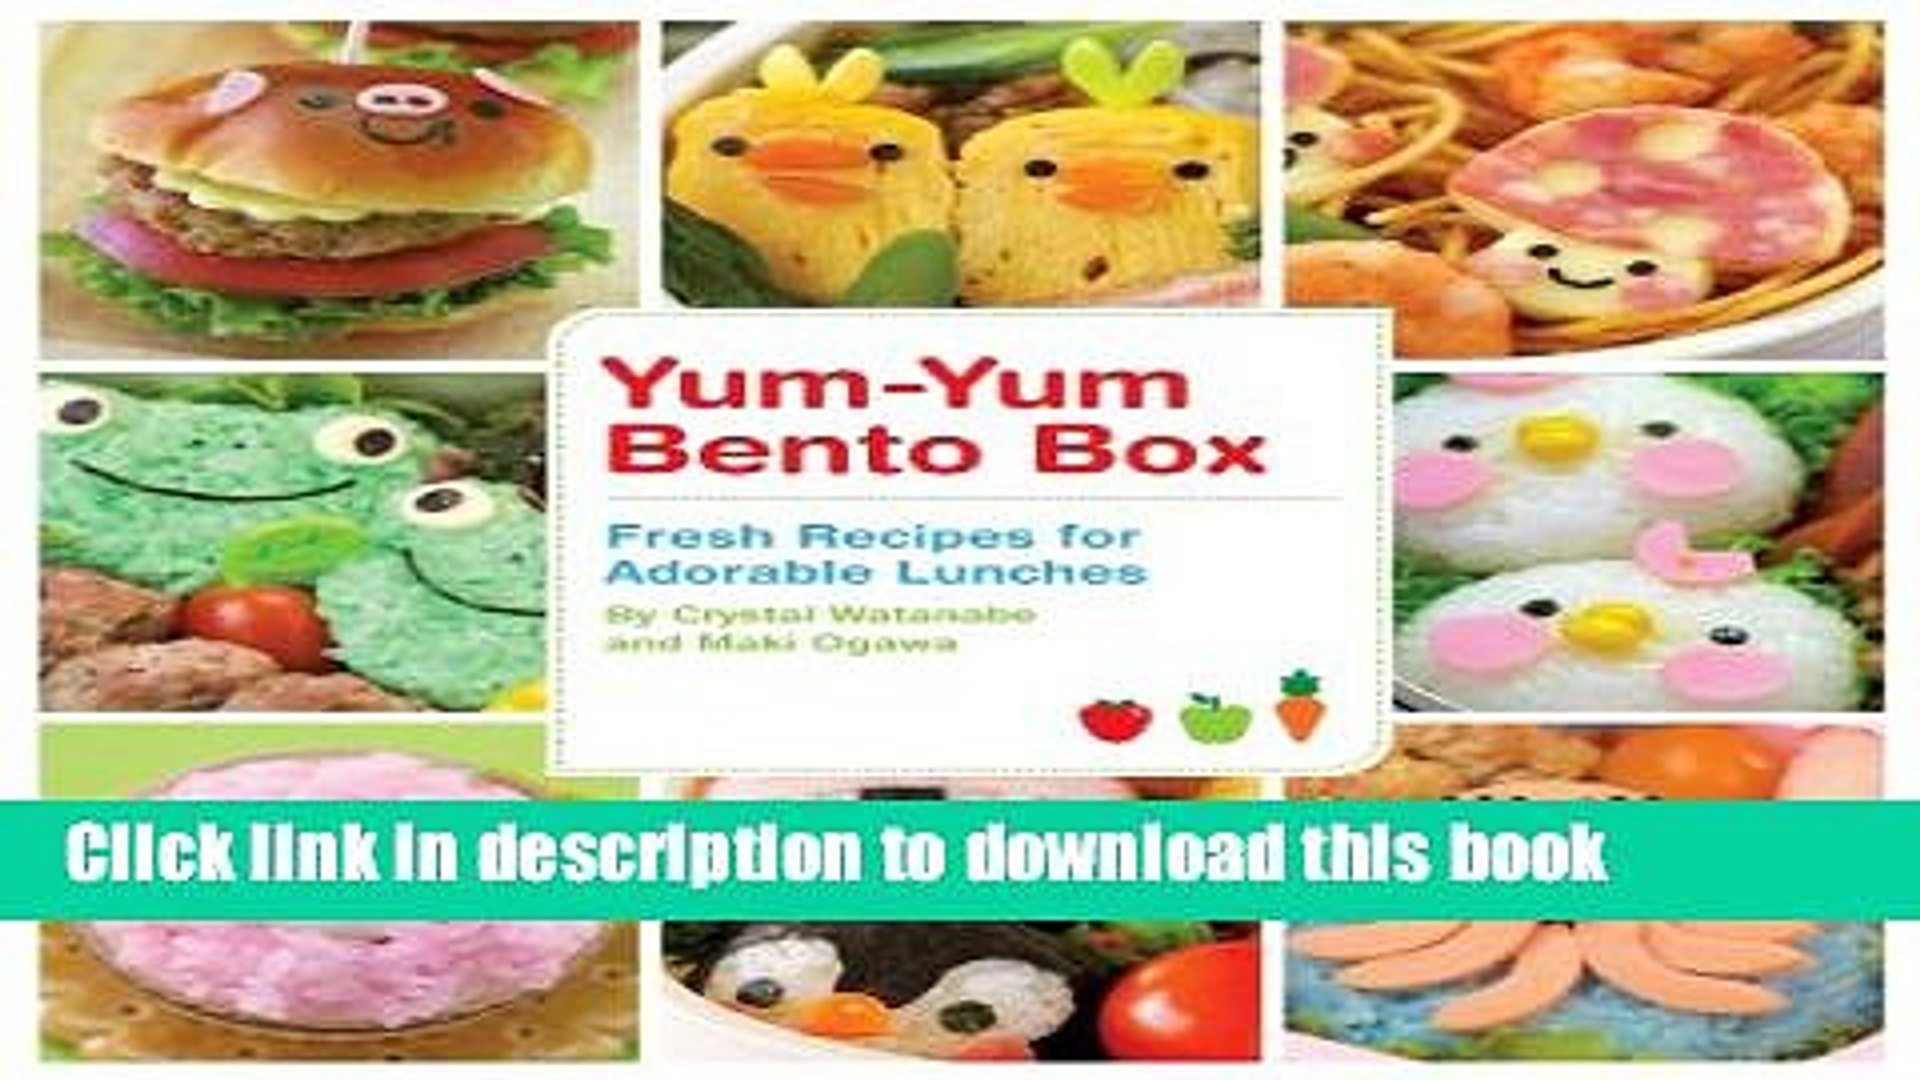 Download Yum-Yum Bento Box: Fresh Recipes for Adorable Lunches Ebook Online